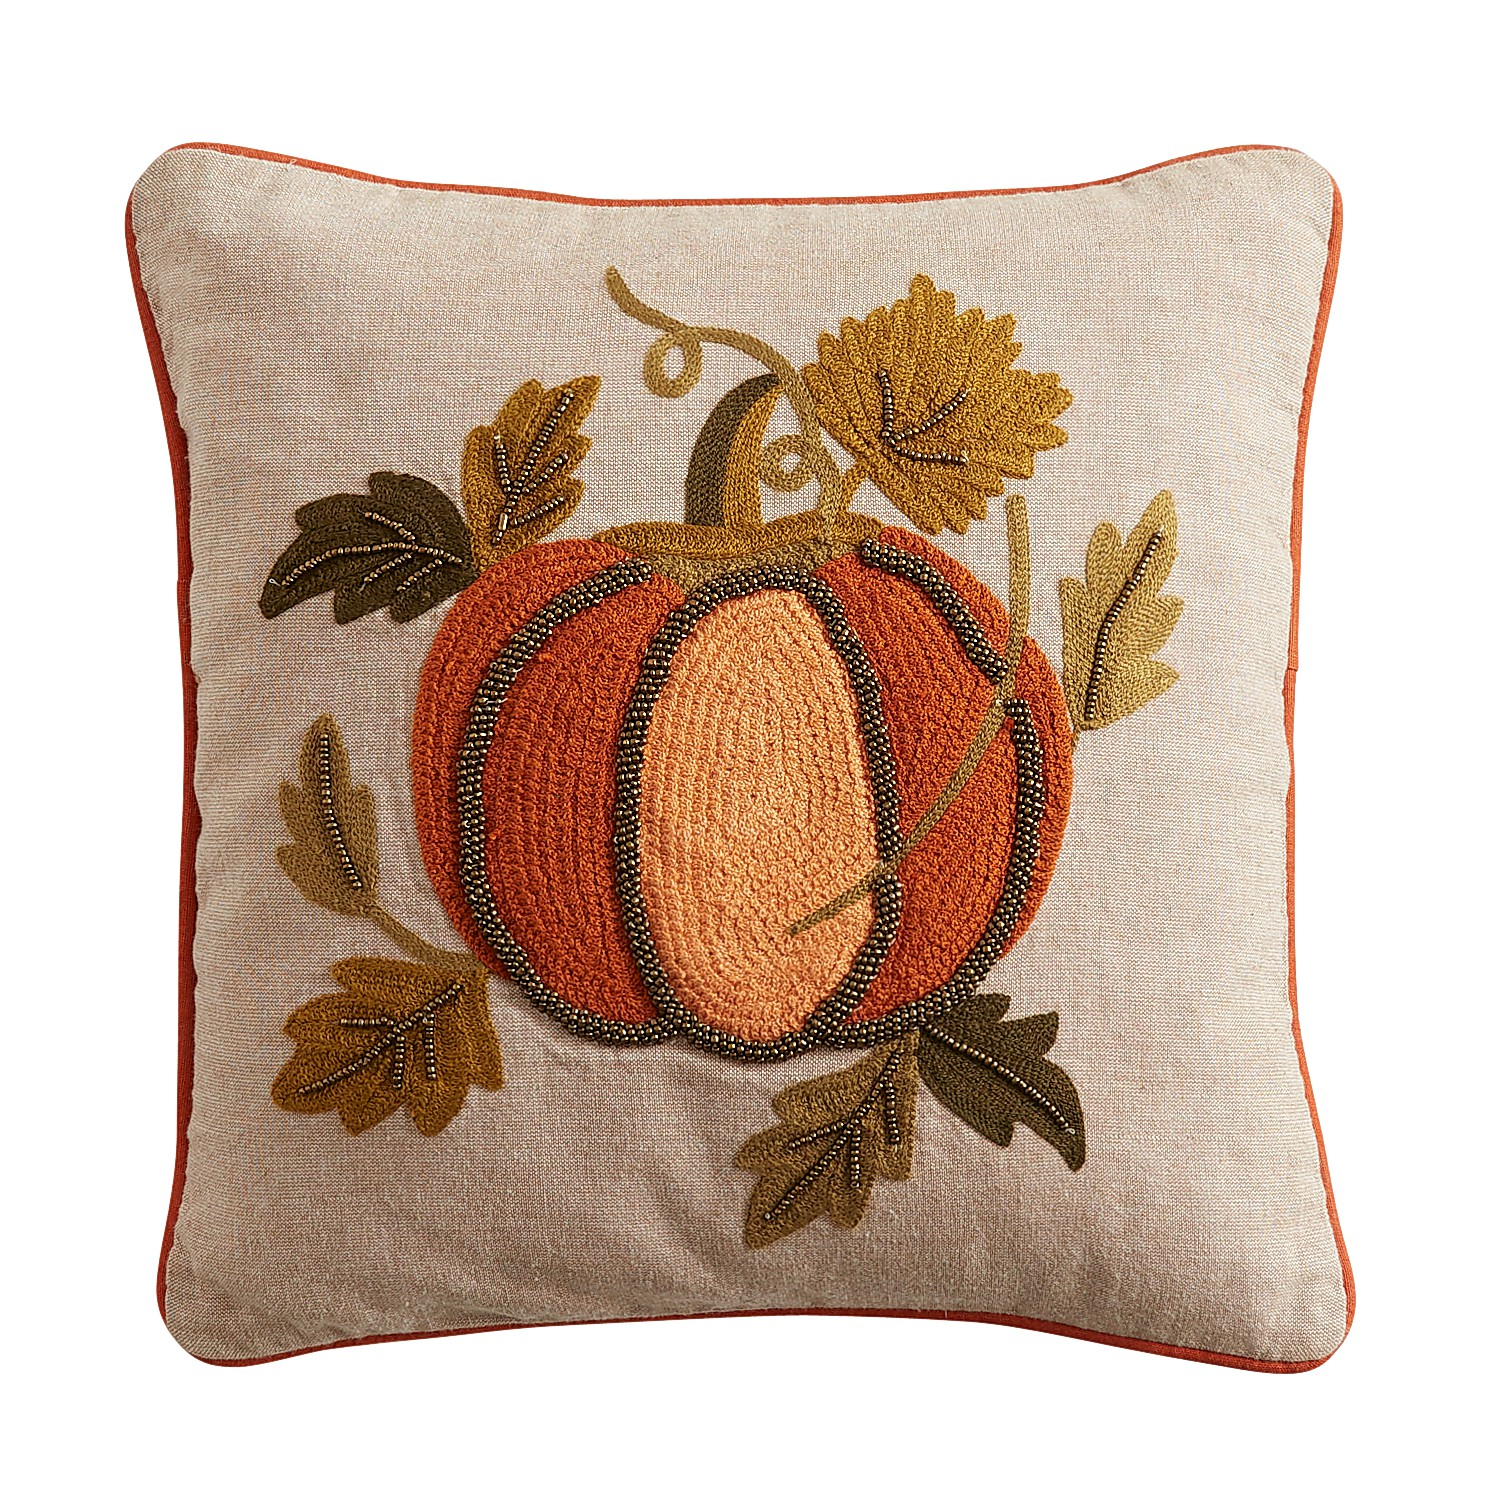 Embroidered & Beaded Pumpkin Pillow